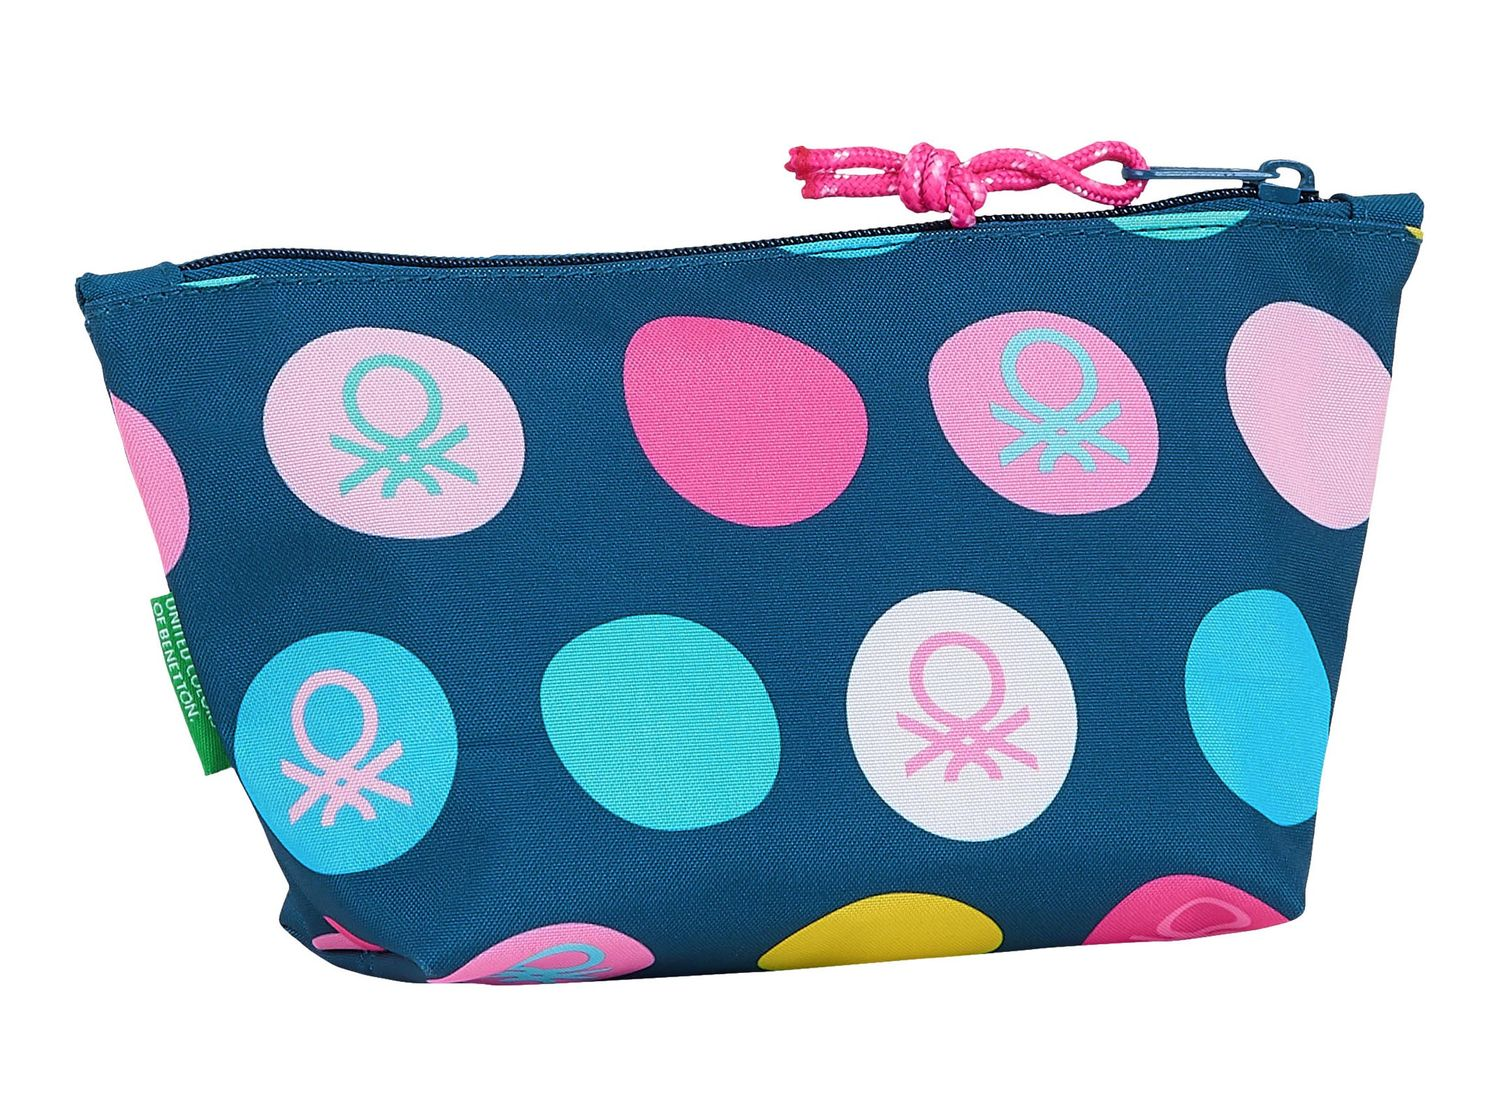 BENETTON NAVY BLUE POLKA DOTS Make Up Toiletry Bag – image 2